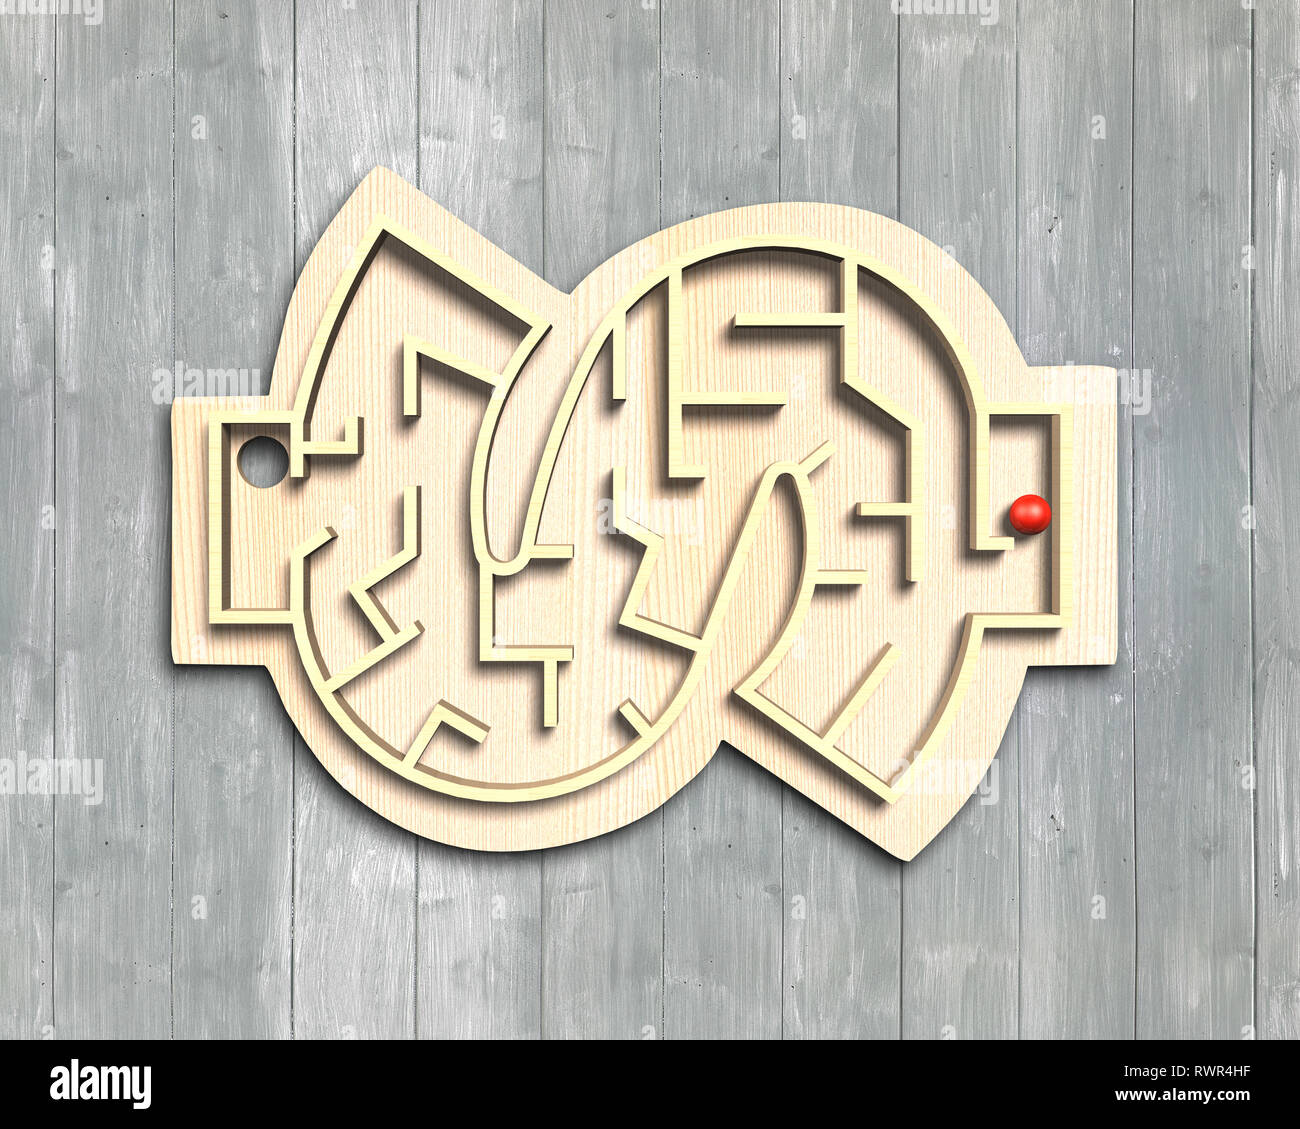 Maze ball game in money shape box, on wooden background. - Stock Image